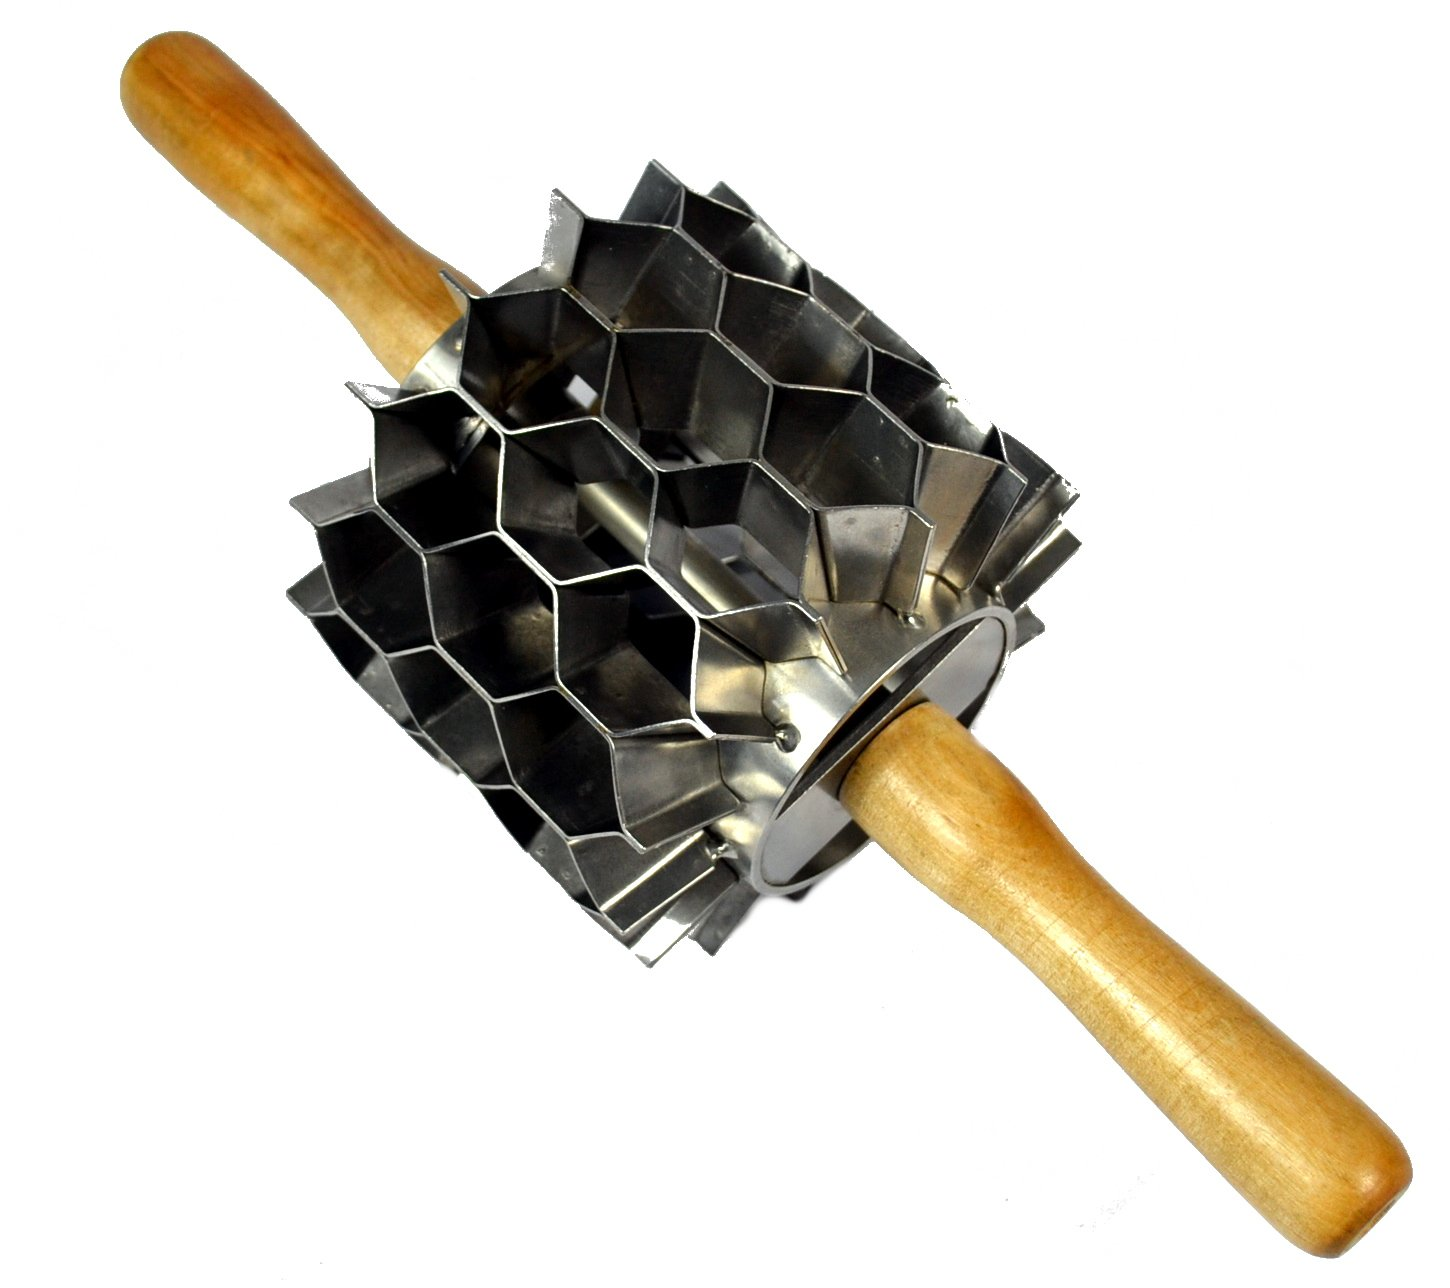 Stainless Steel Cutter Biscuits Crackers